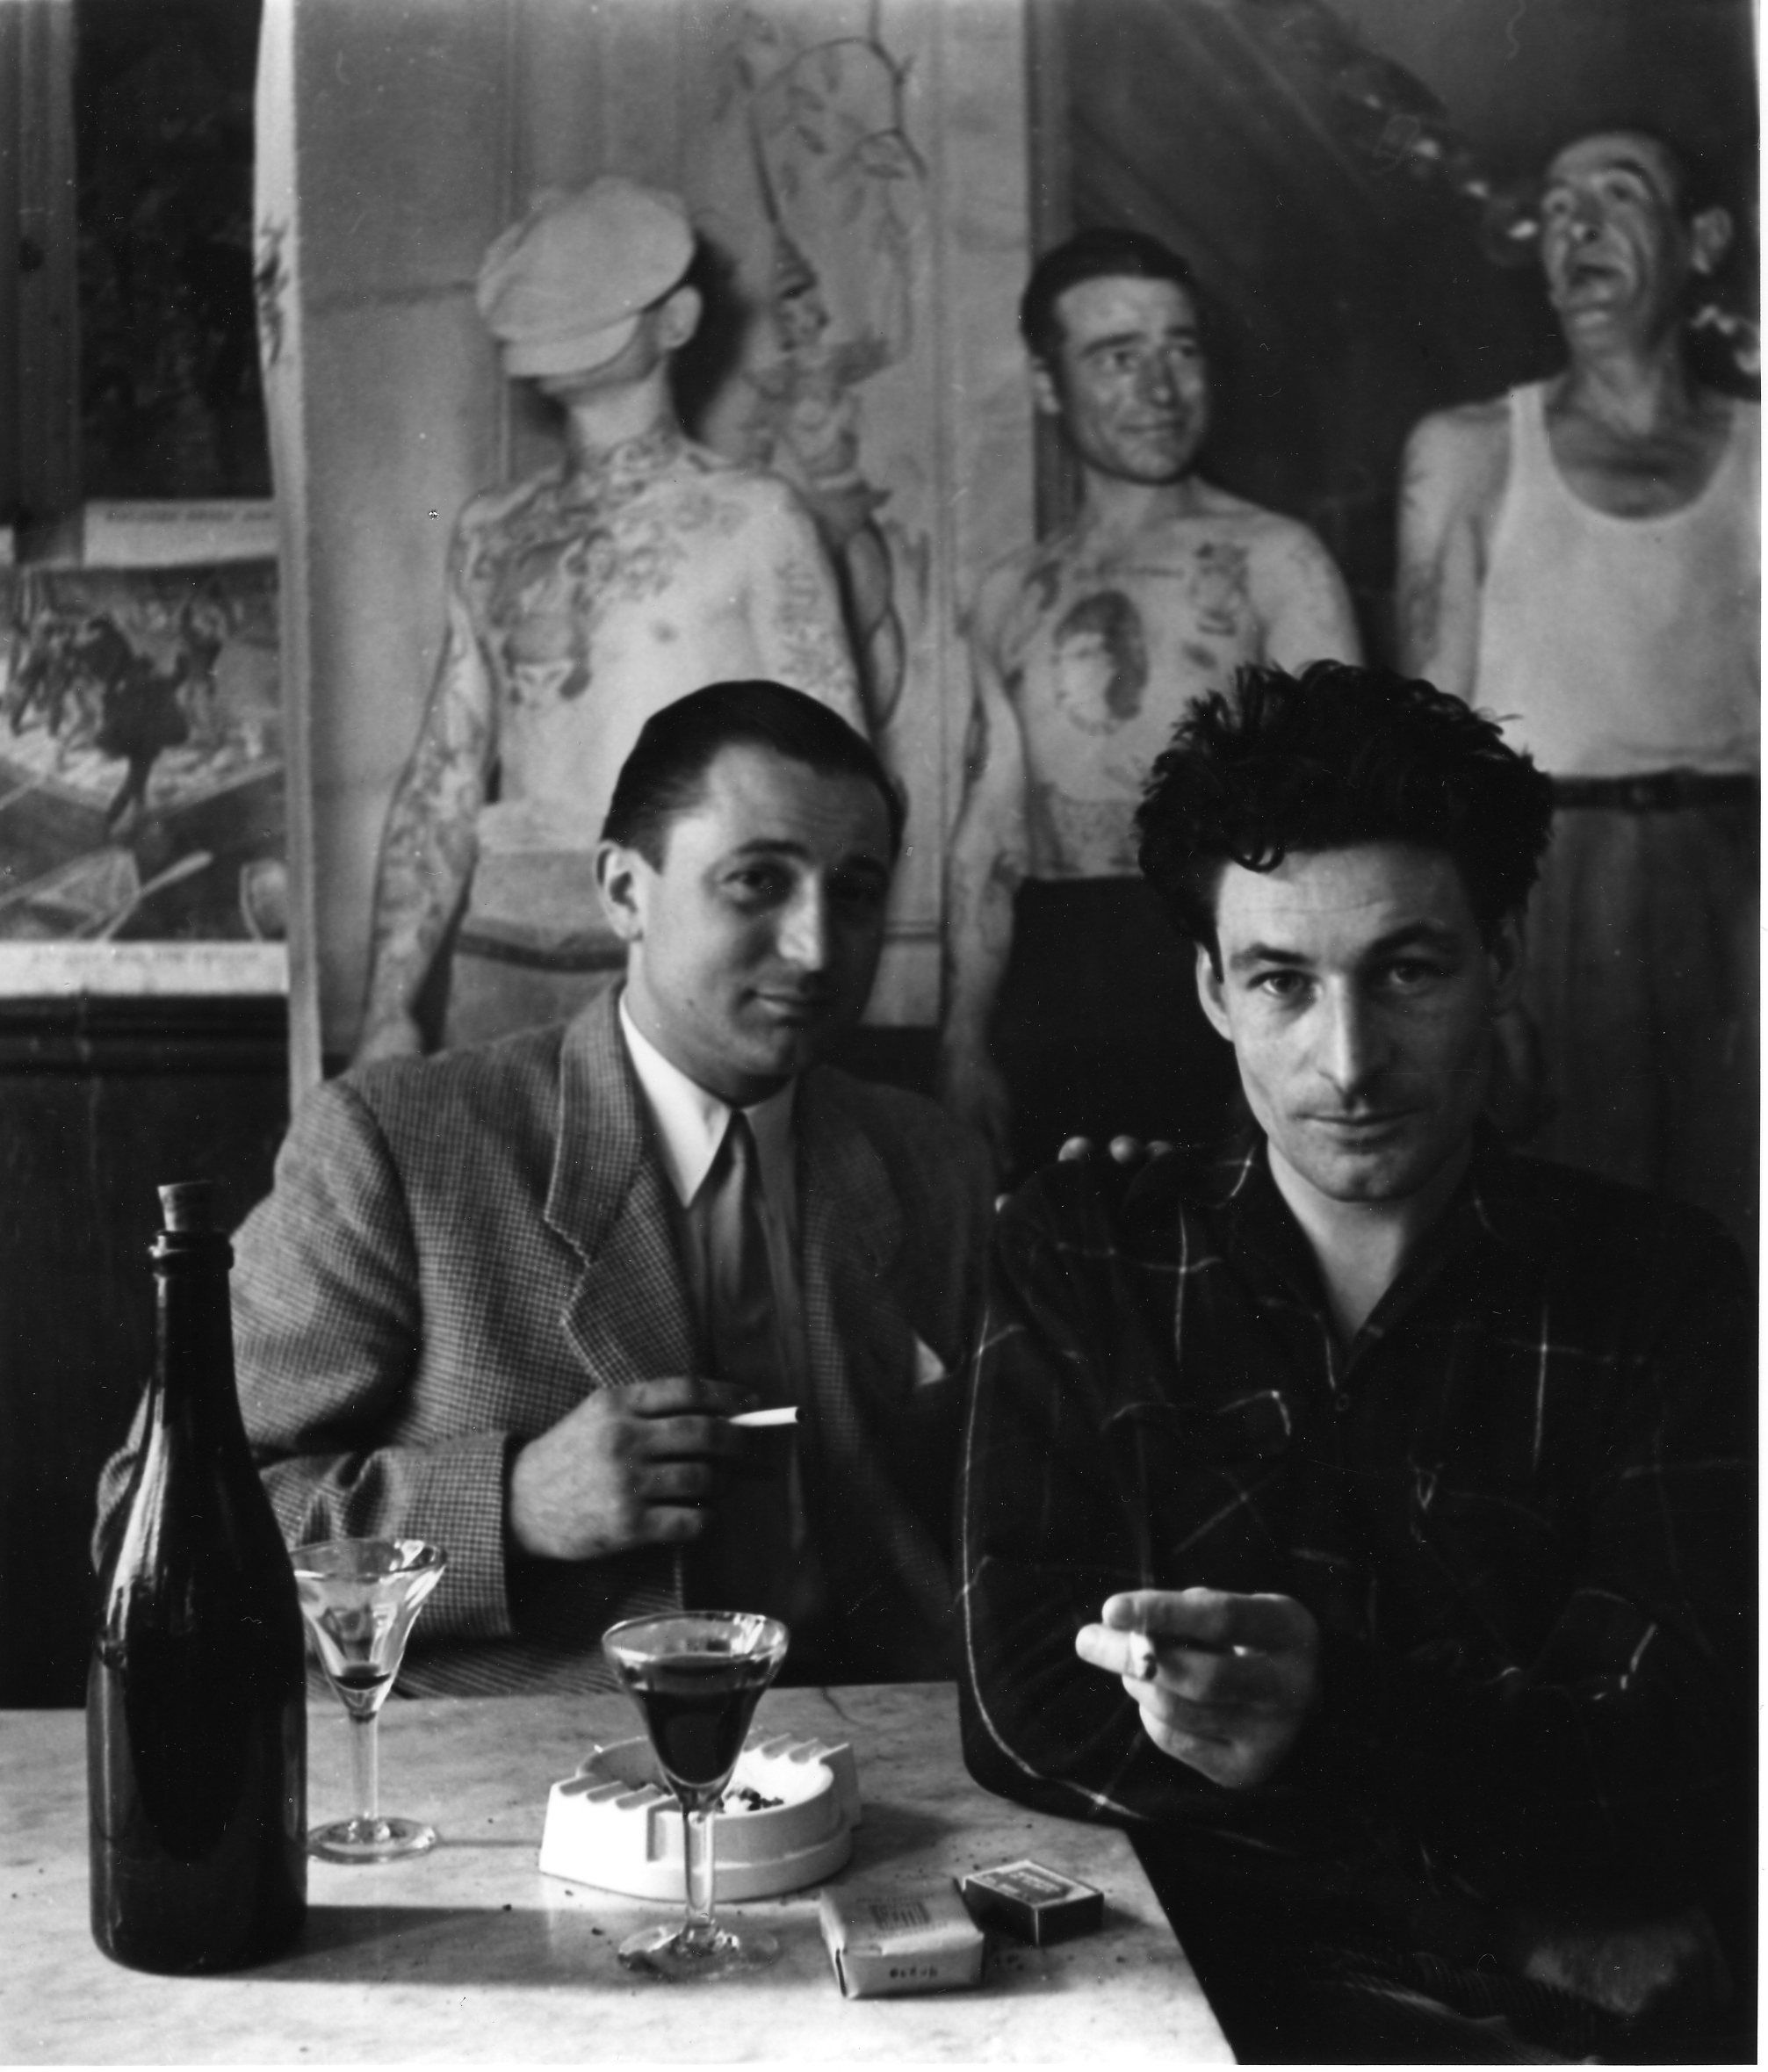 Photographer Robert Doisneau and Robert Giraud – 1950